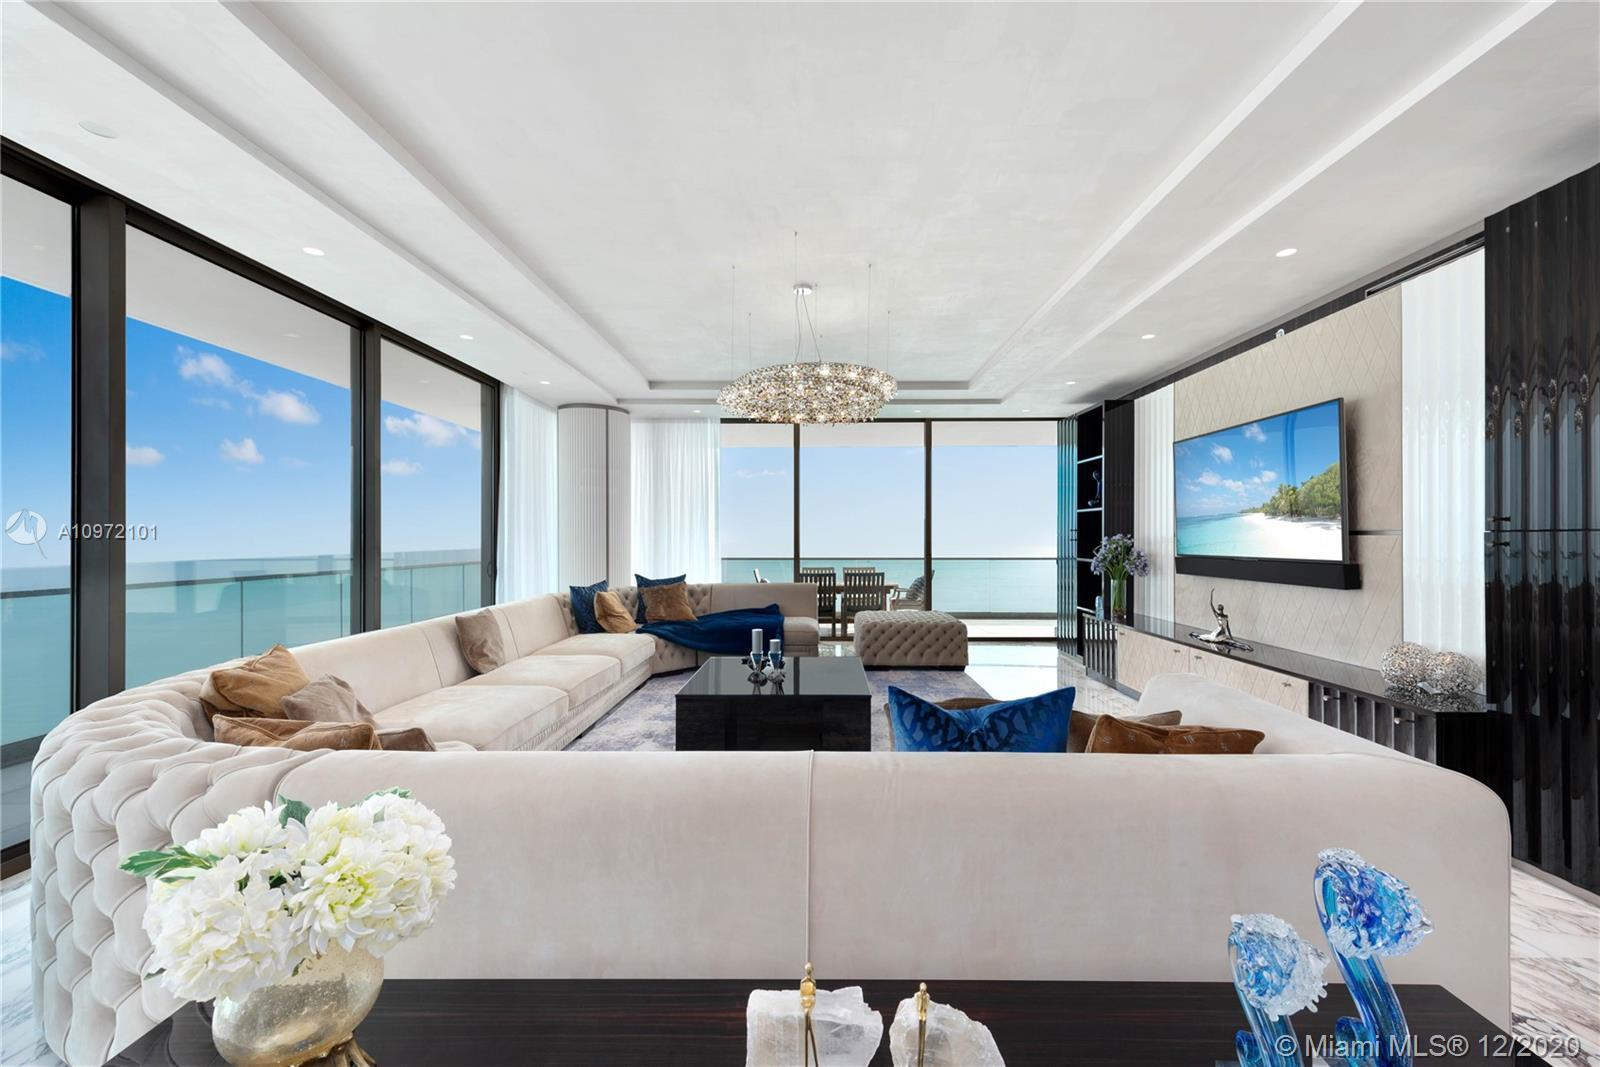 Masterpiece 3-bed, 4.5 bath residence surrounded by 180 degree views. This fully furnished unit feat